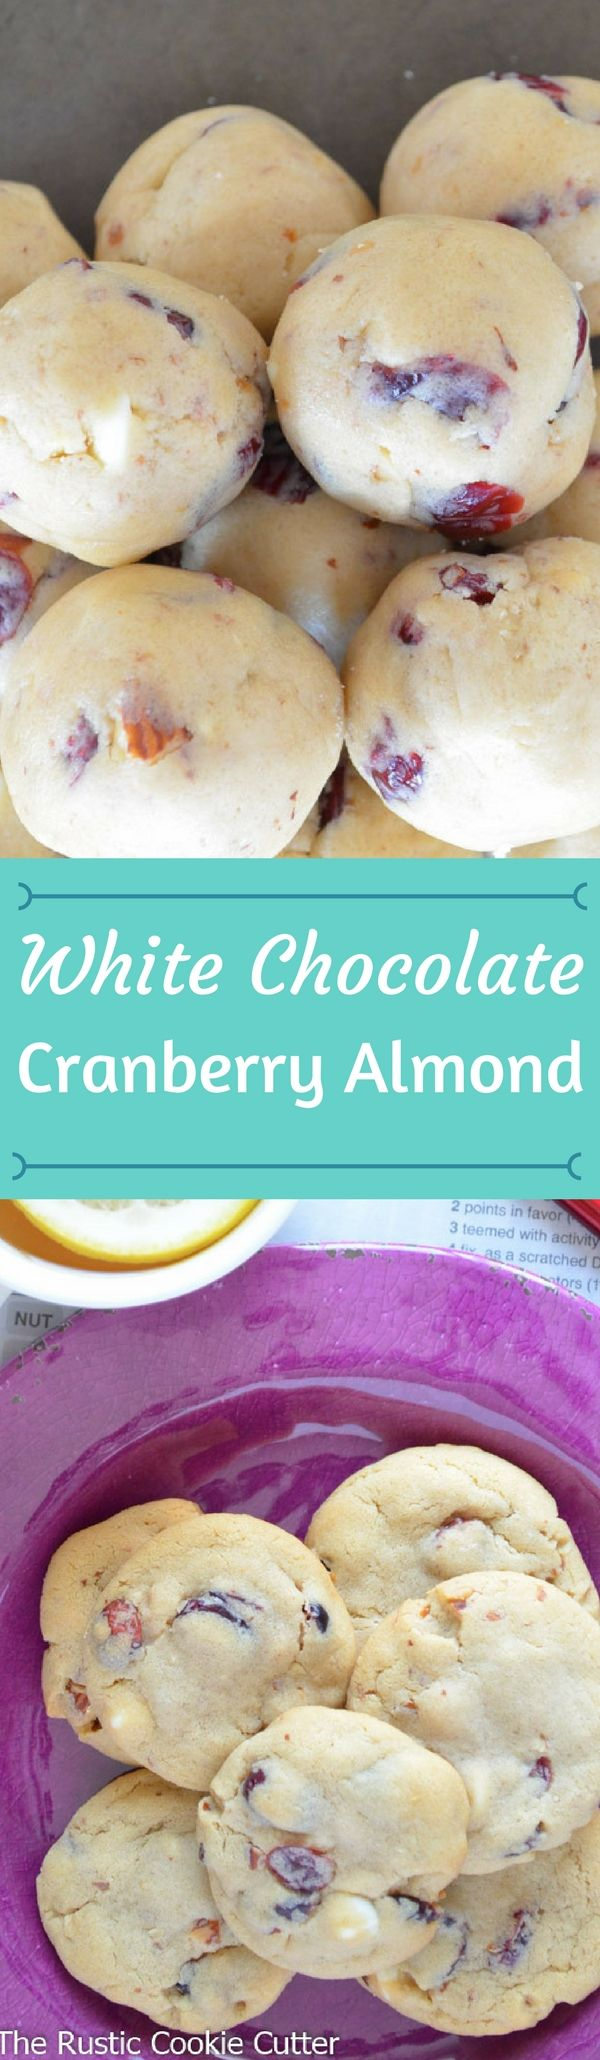 Crunchy almonds, chewy cranberries, soft white chocolate chips all wrapped in a moist cookie base!  So good!